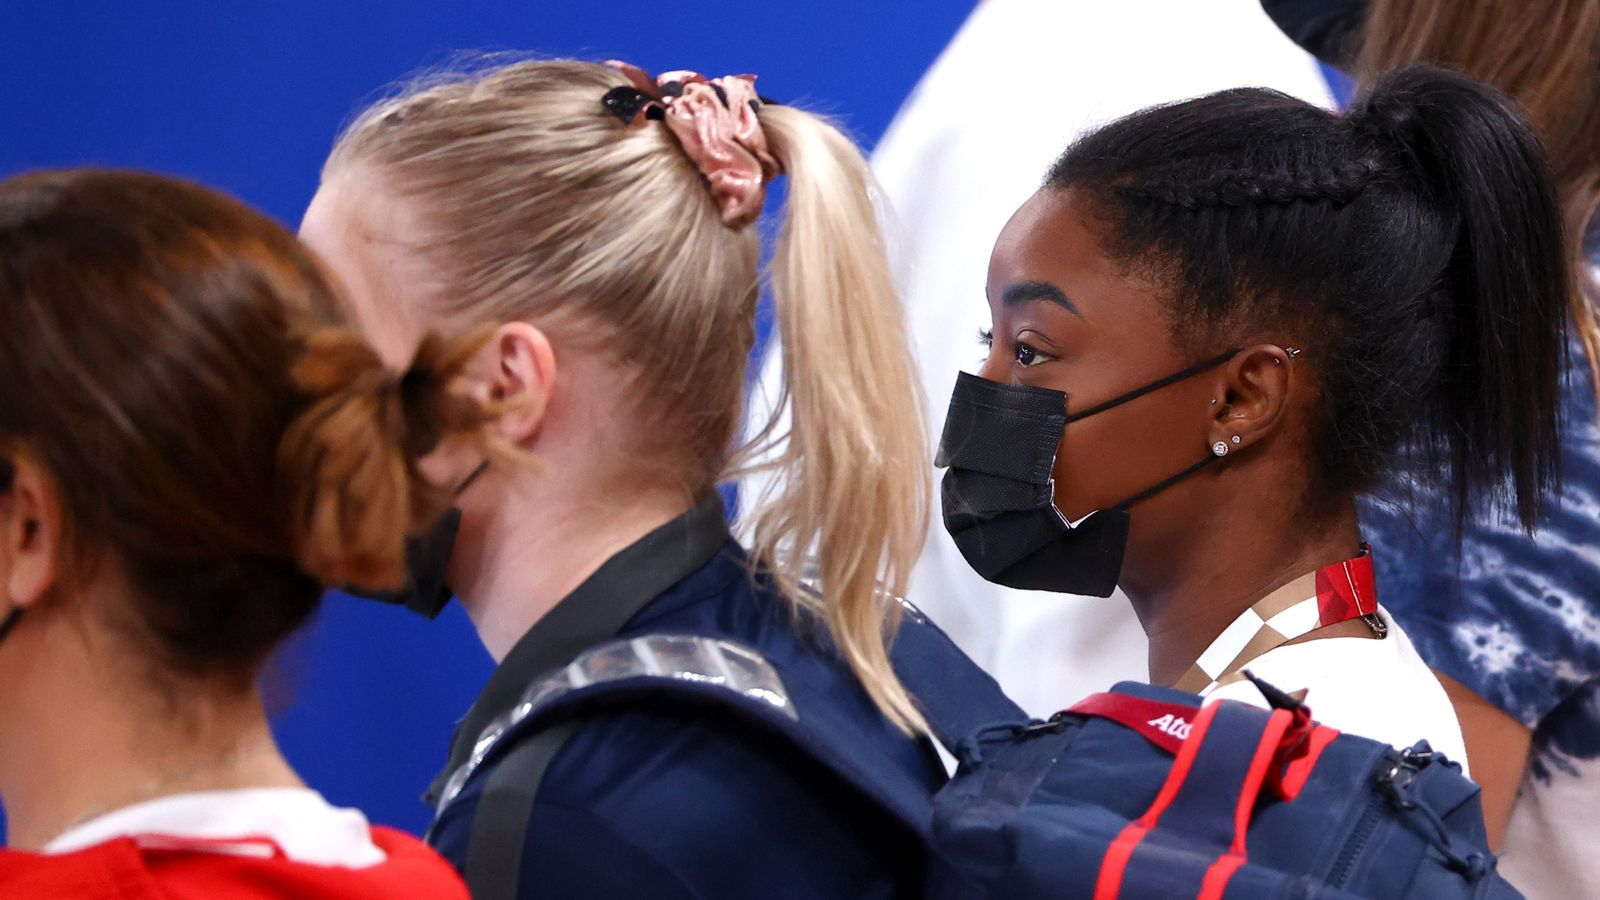 Tokyo Olympics Day 10: Team GB eying up gymnastics medal after Biles pulls out again